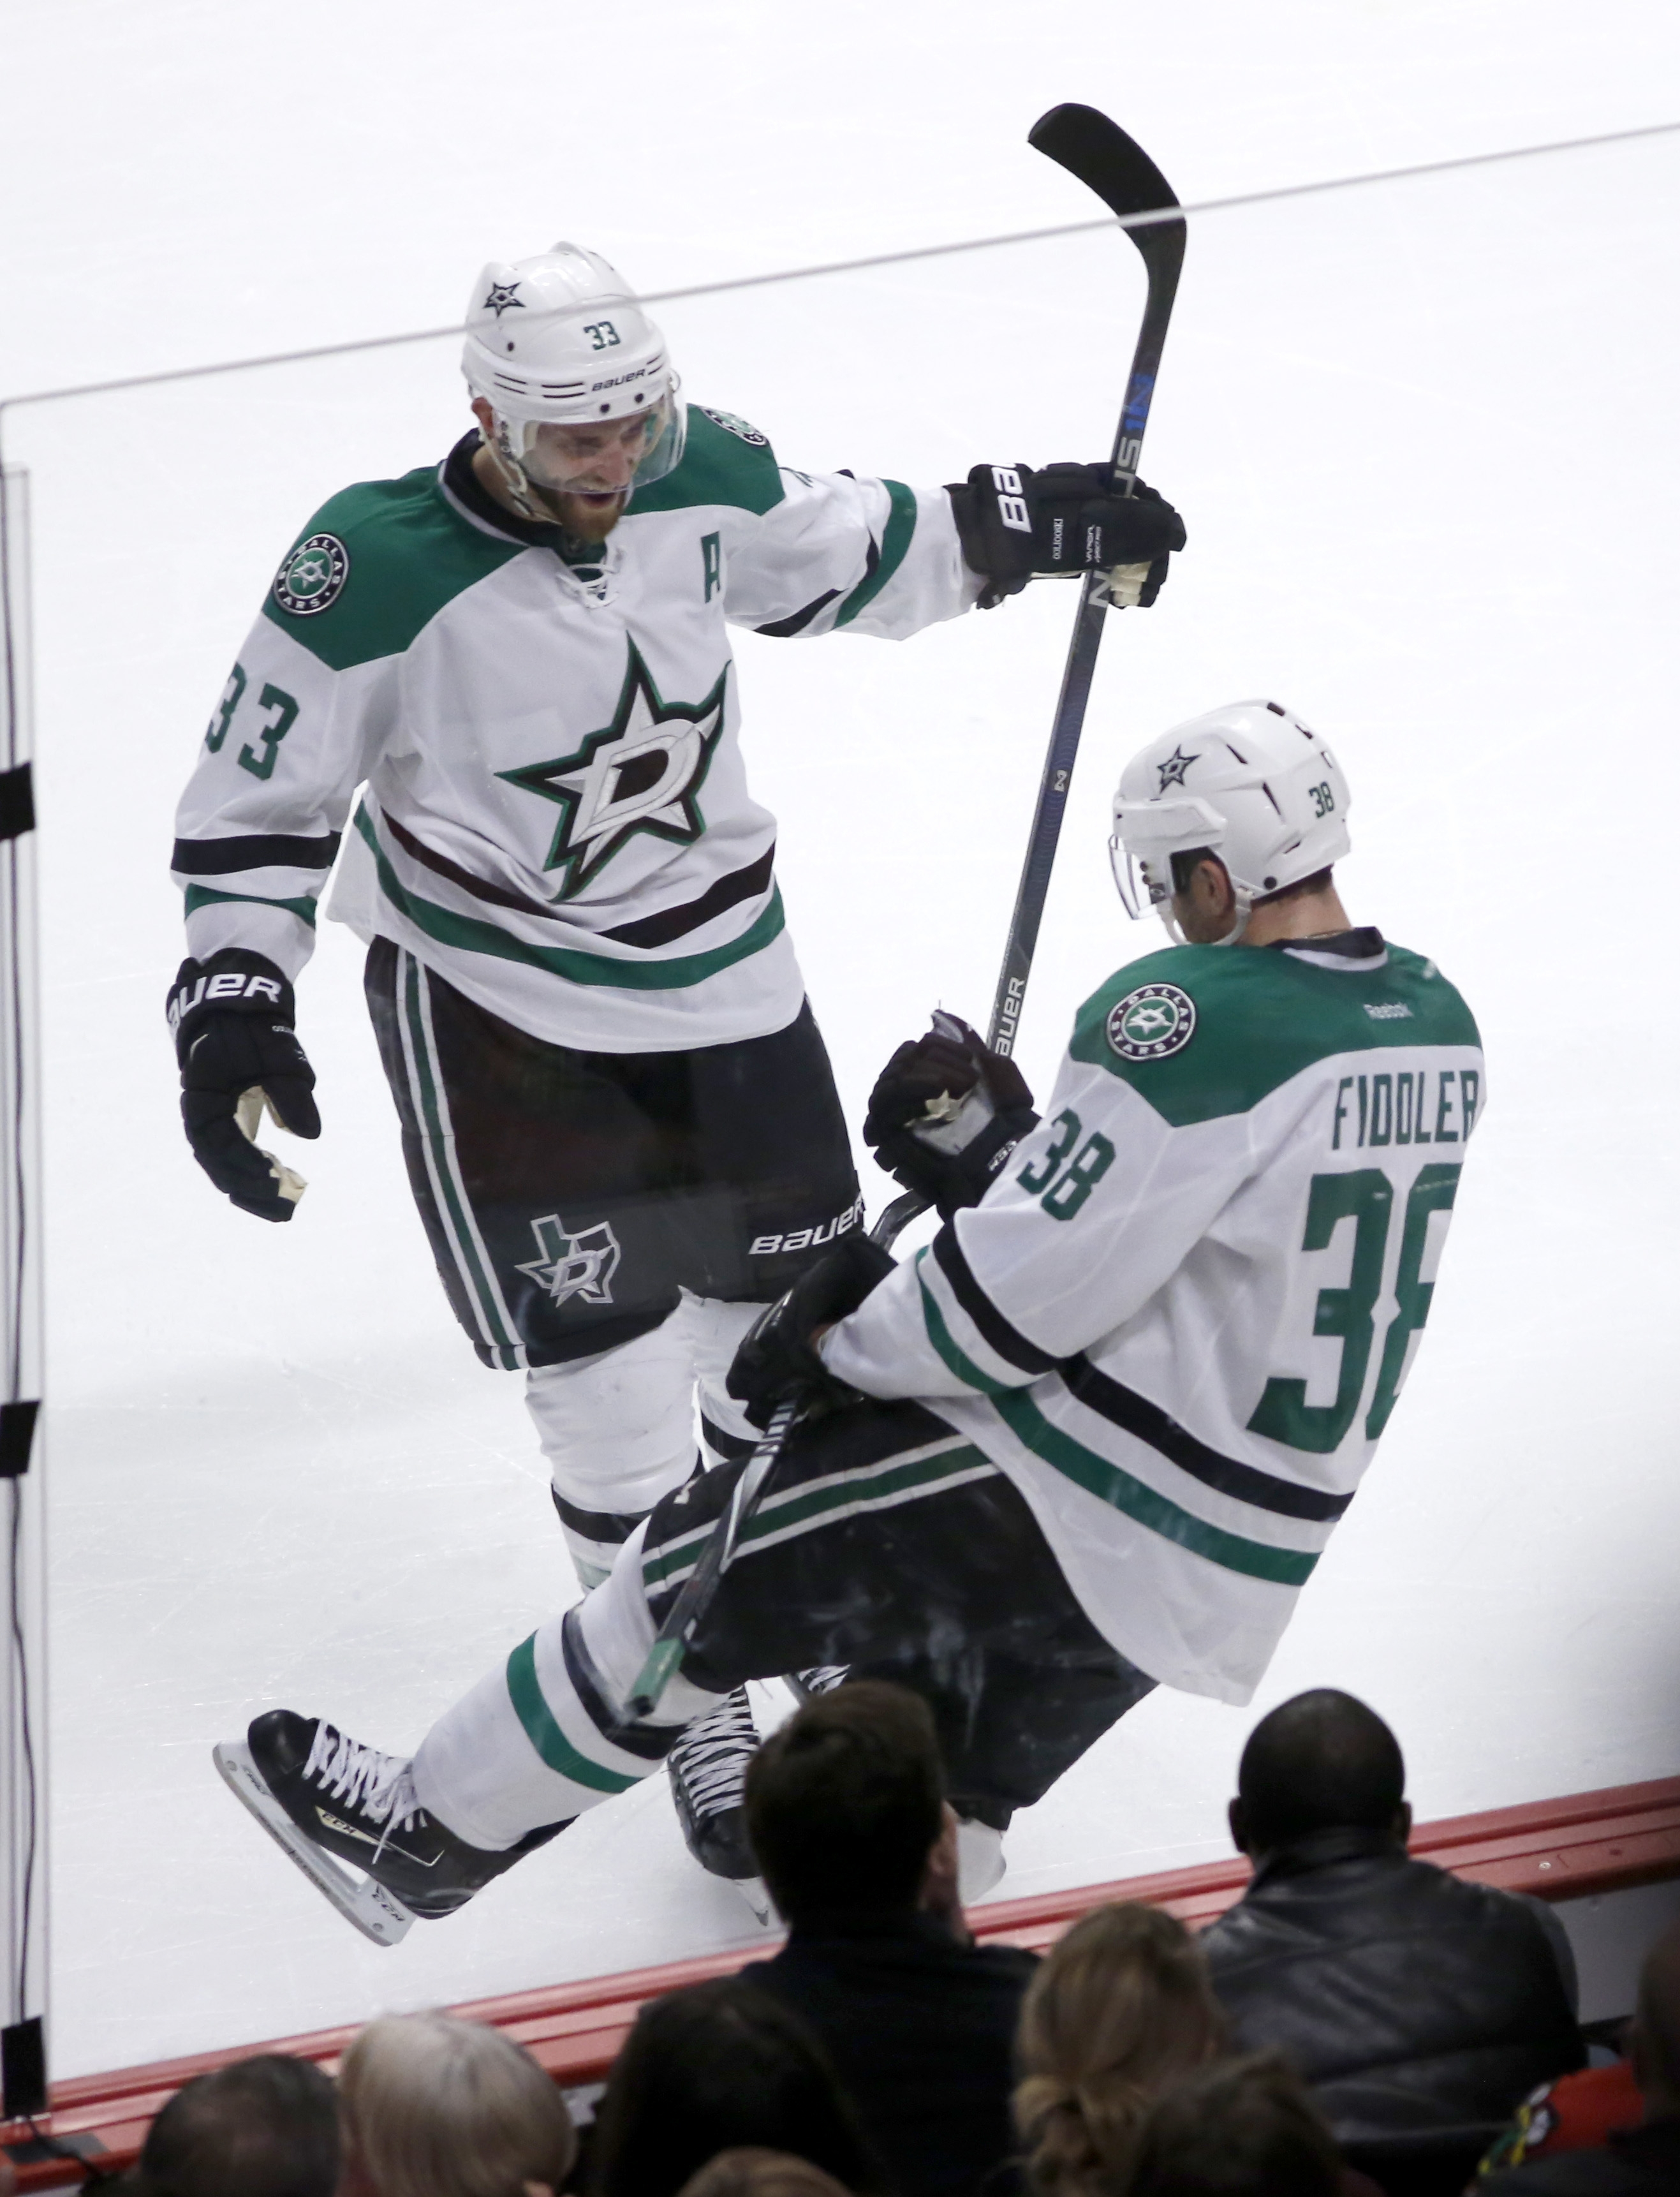 Dallas Stars' Vernon Fiddler (38) celebrates his second goal of the NHL hockey game, with Alex Goligoski during the first period against the Chicago Blackhawks on Tuesday, March 22, 2016, in Chicago. (AP Photo/Charles Rex Arbogast)